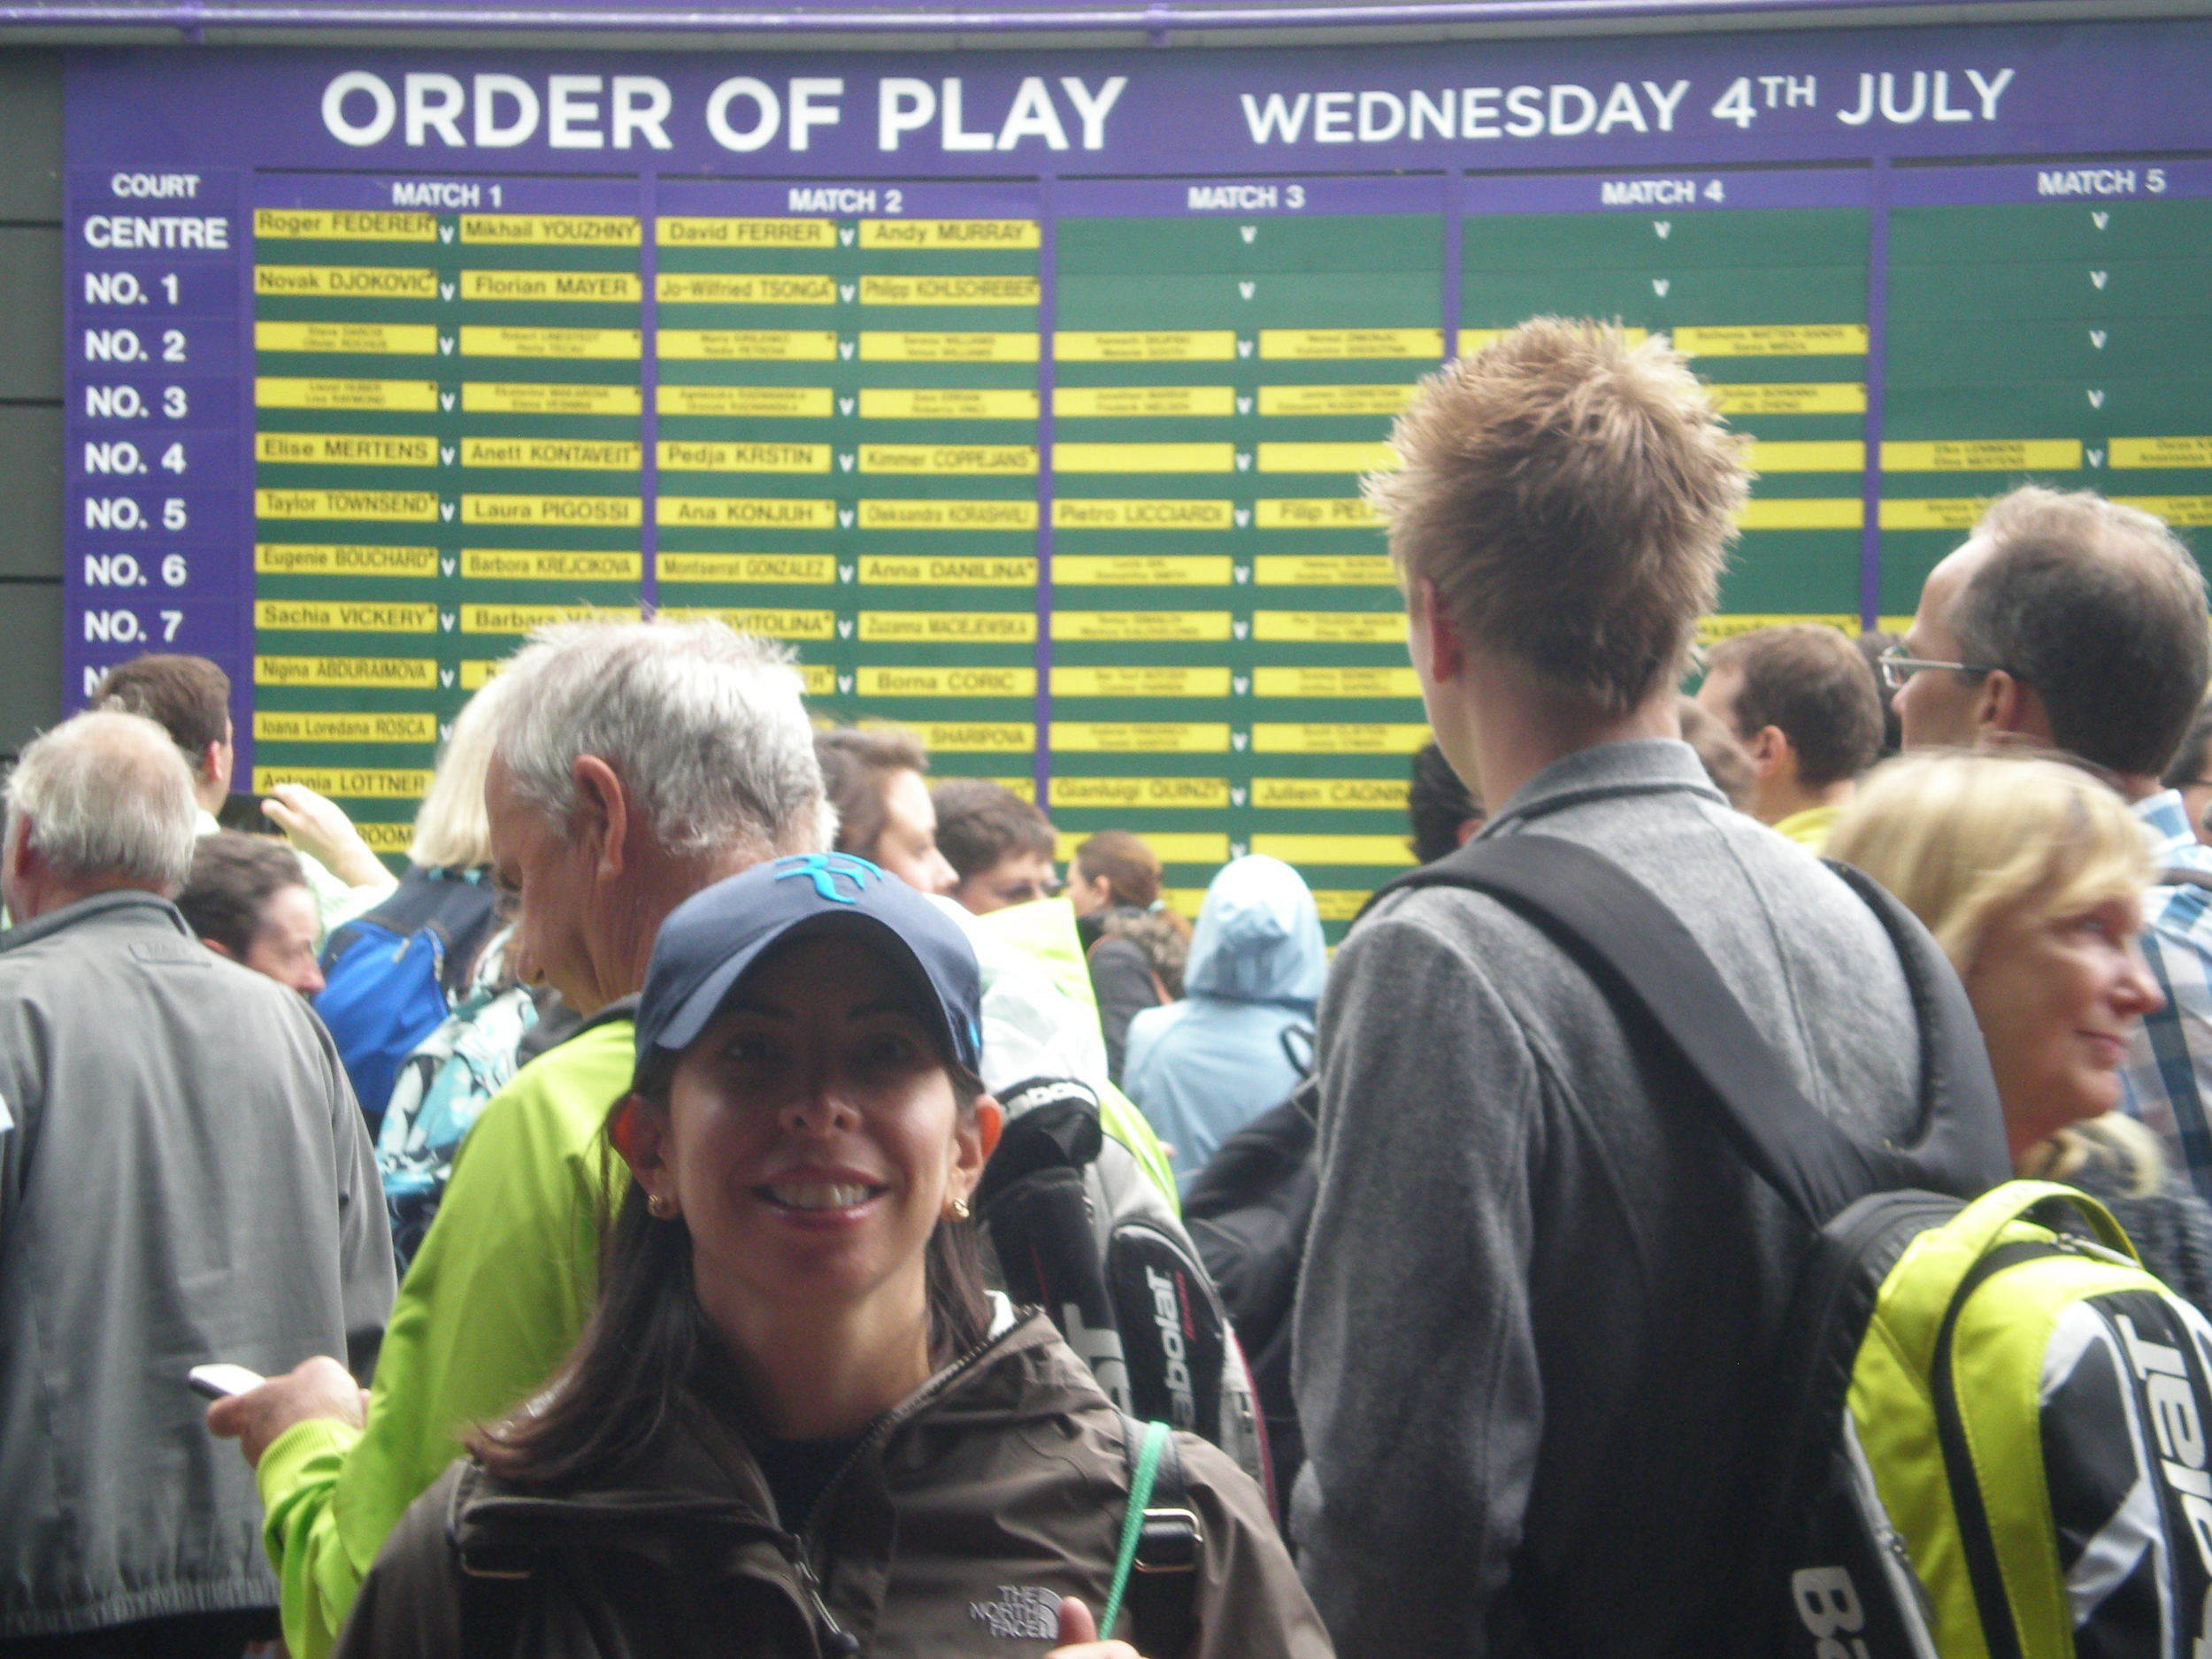 Blog of my tennis travel experiences